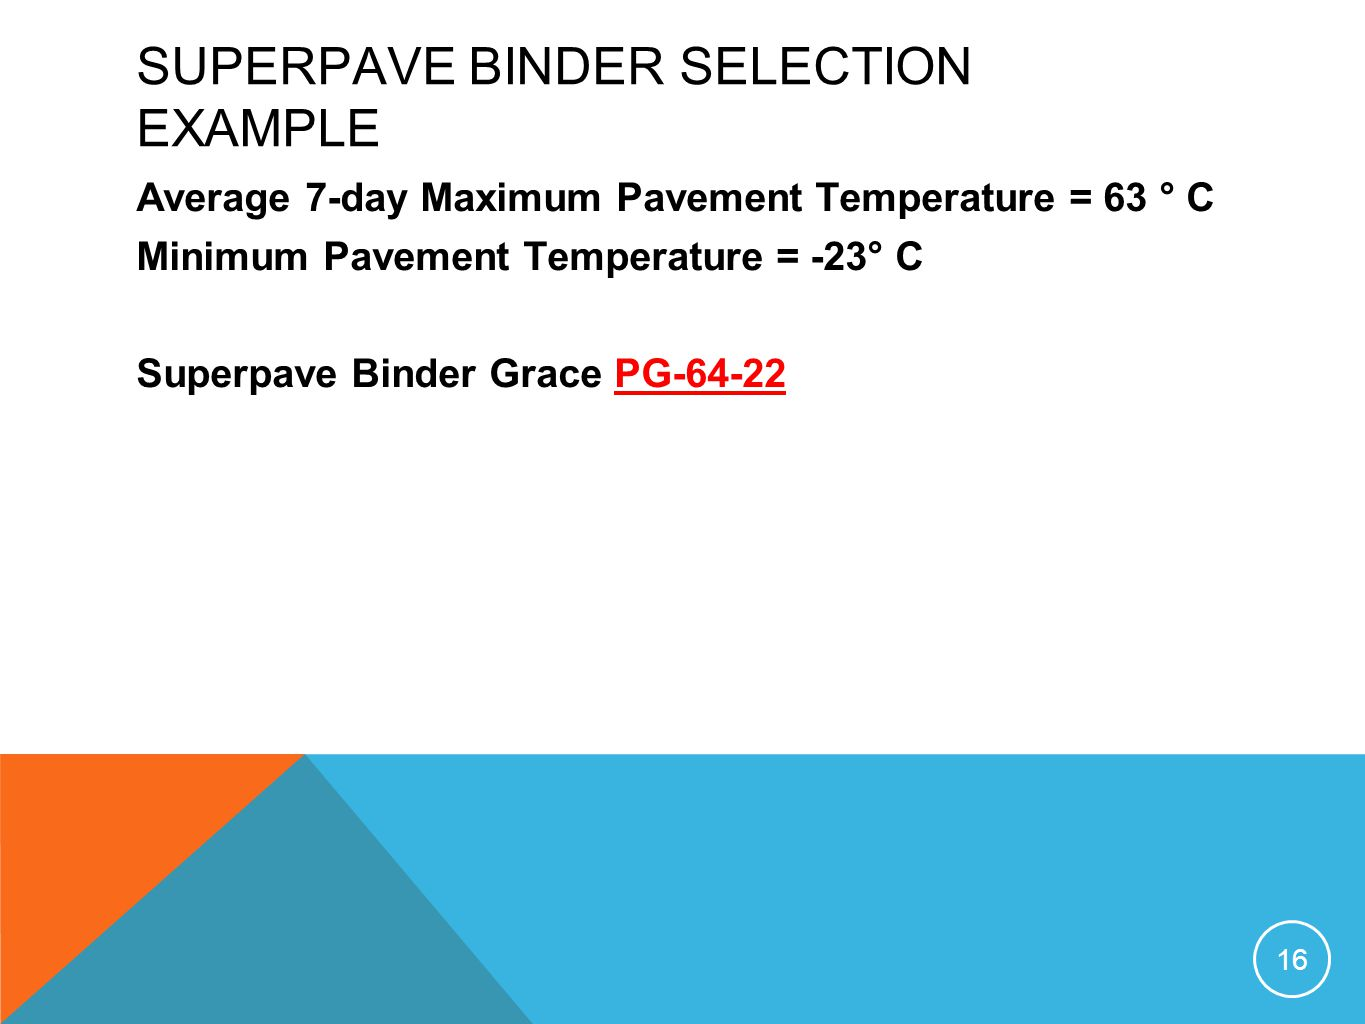 SUPERPAVE BINDER SELECTION EXAMPLE